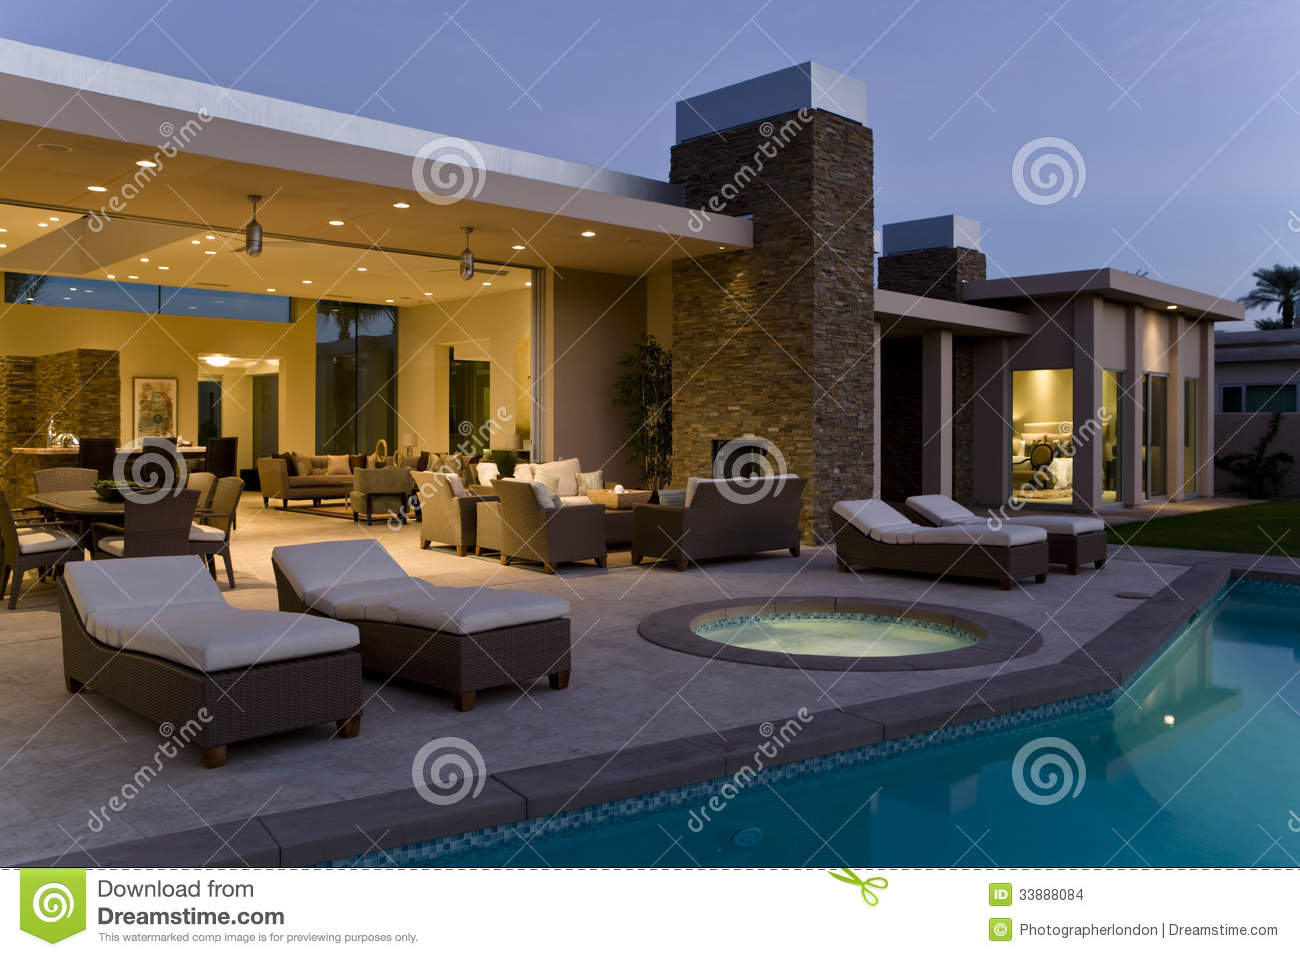 Harden Bedroom Furniture House With Sunloungers On Patio By Pool At Dusk Stock